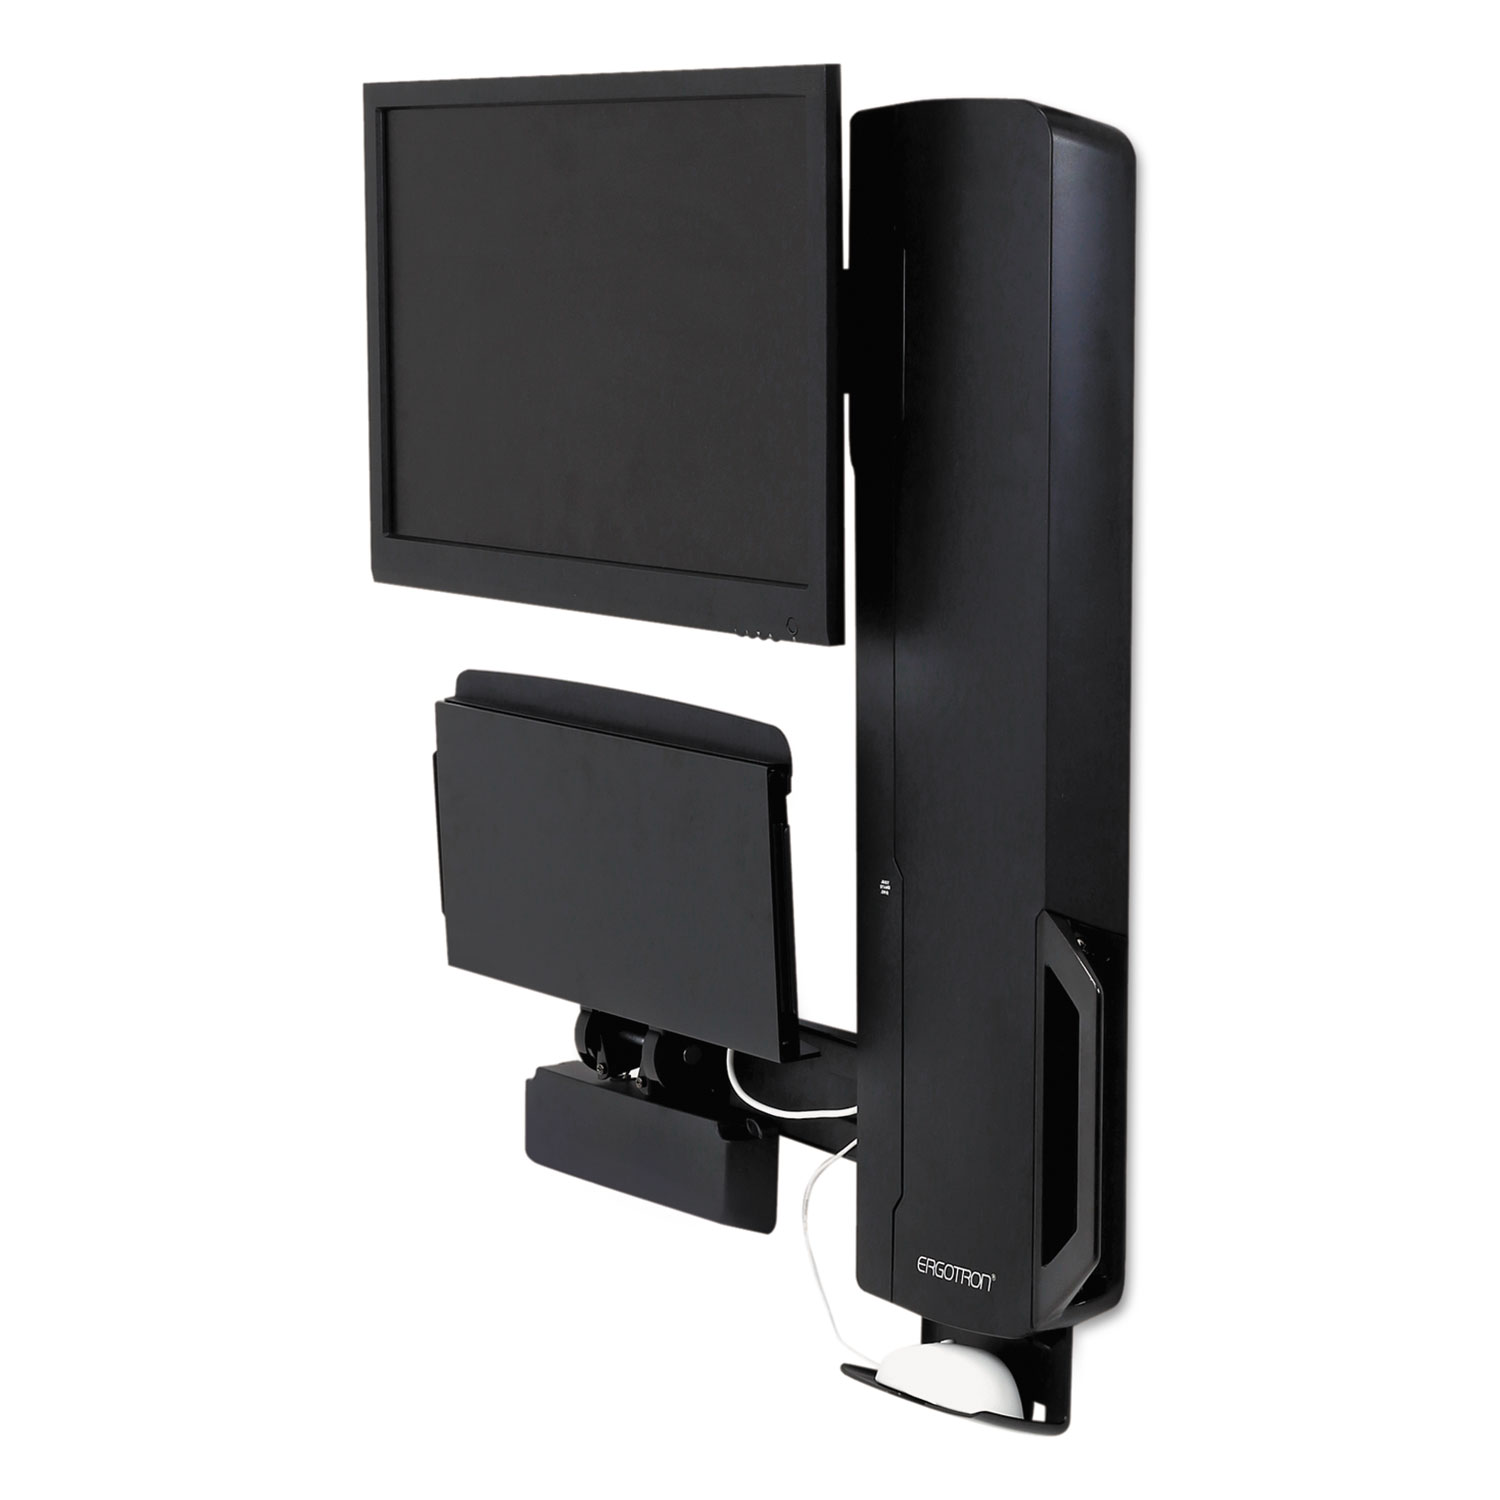 StyleView Sit-Stand Vertical Lift For High Traffic Areas, Black